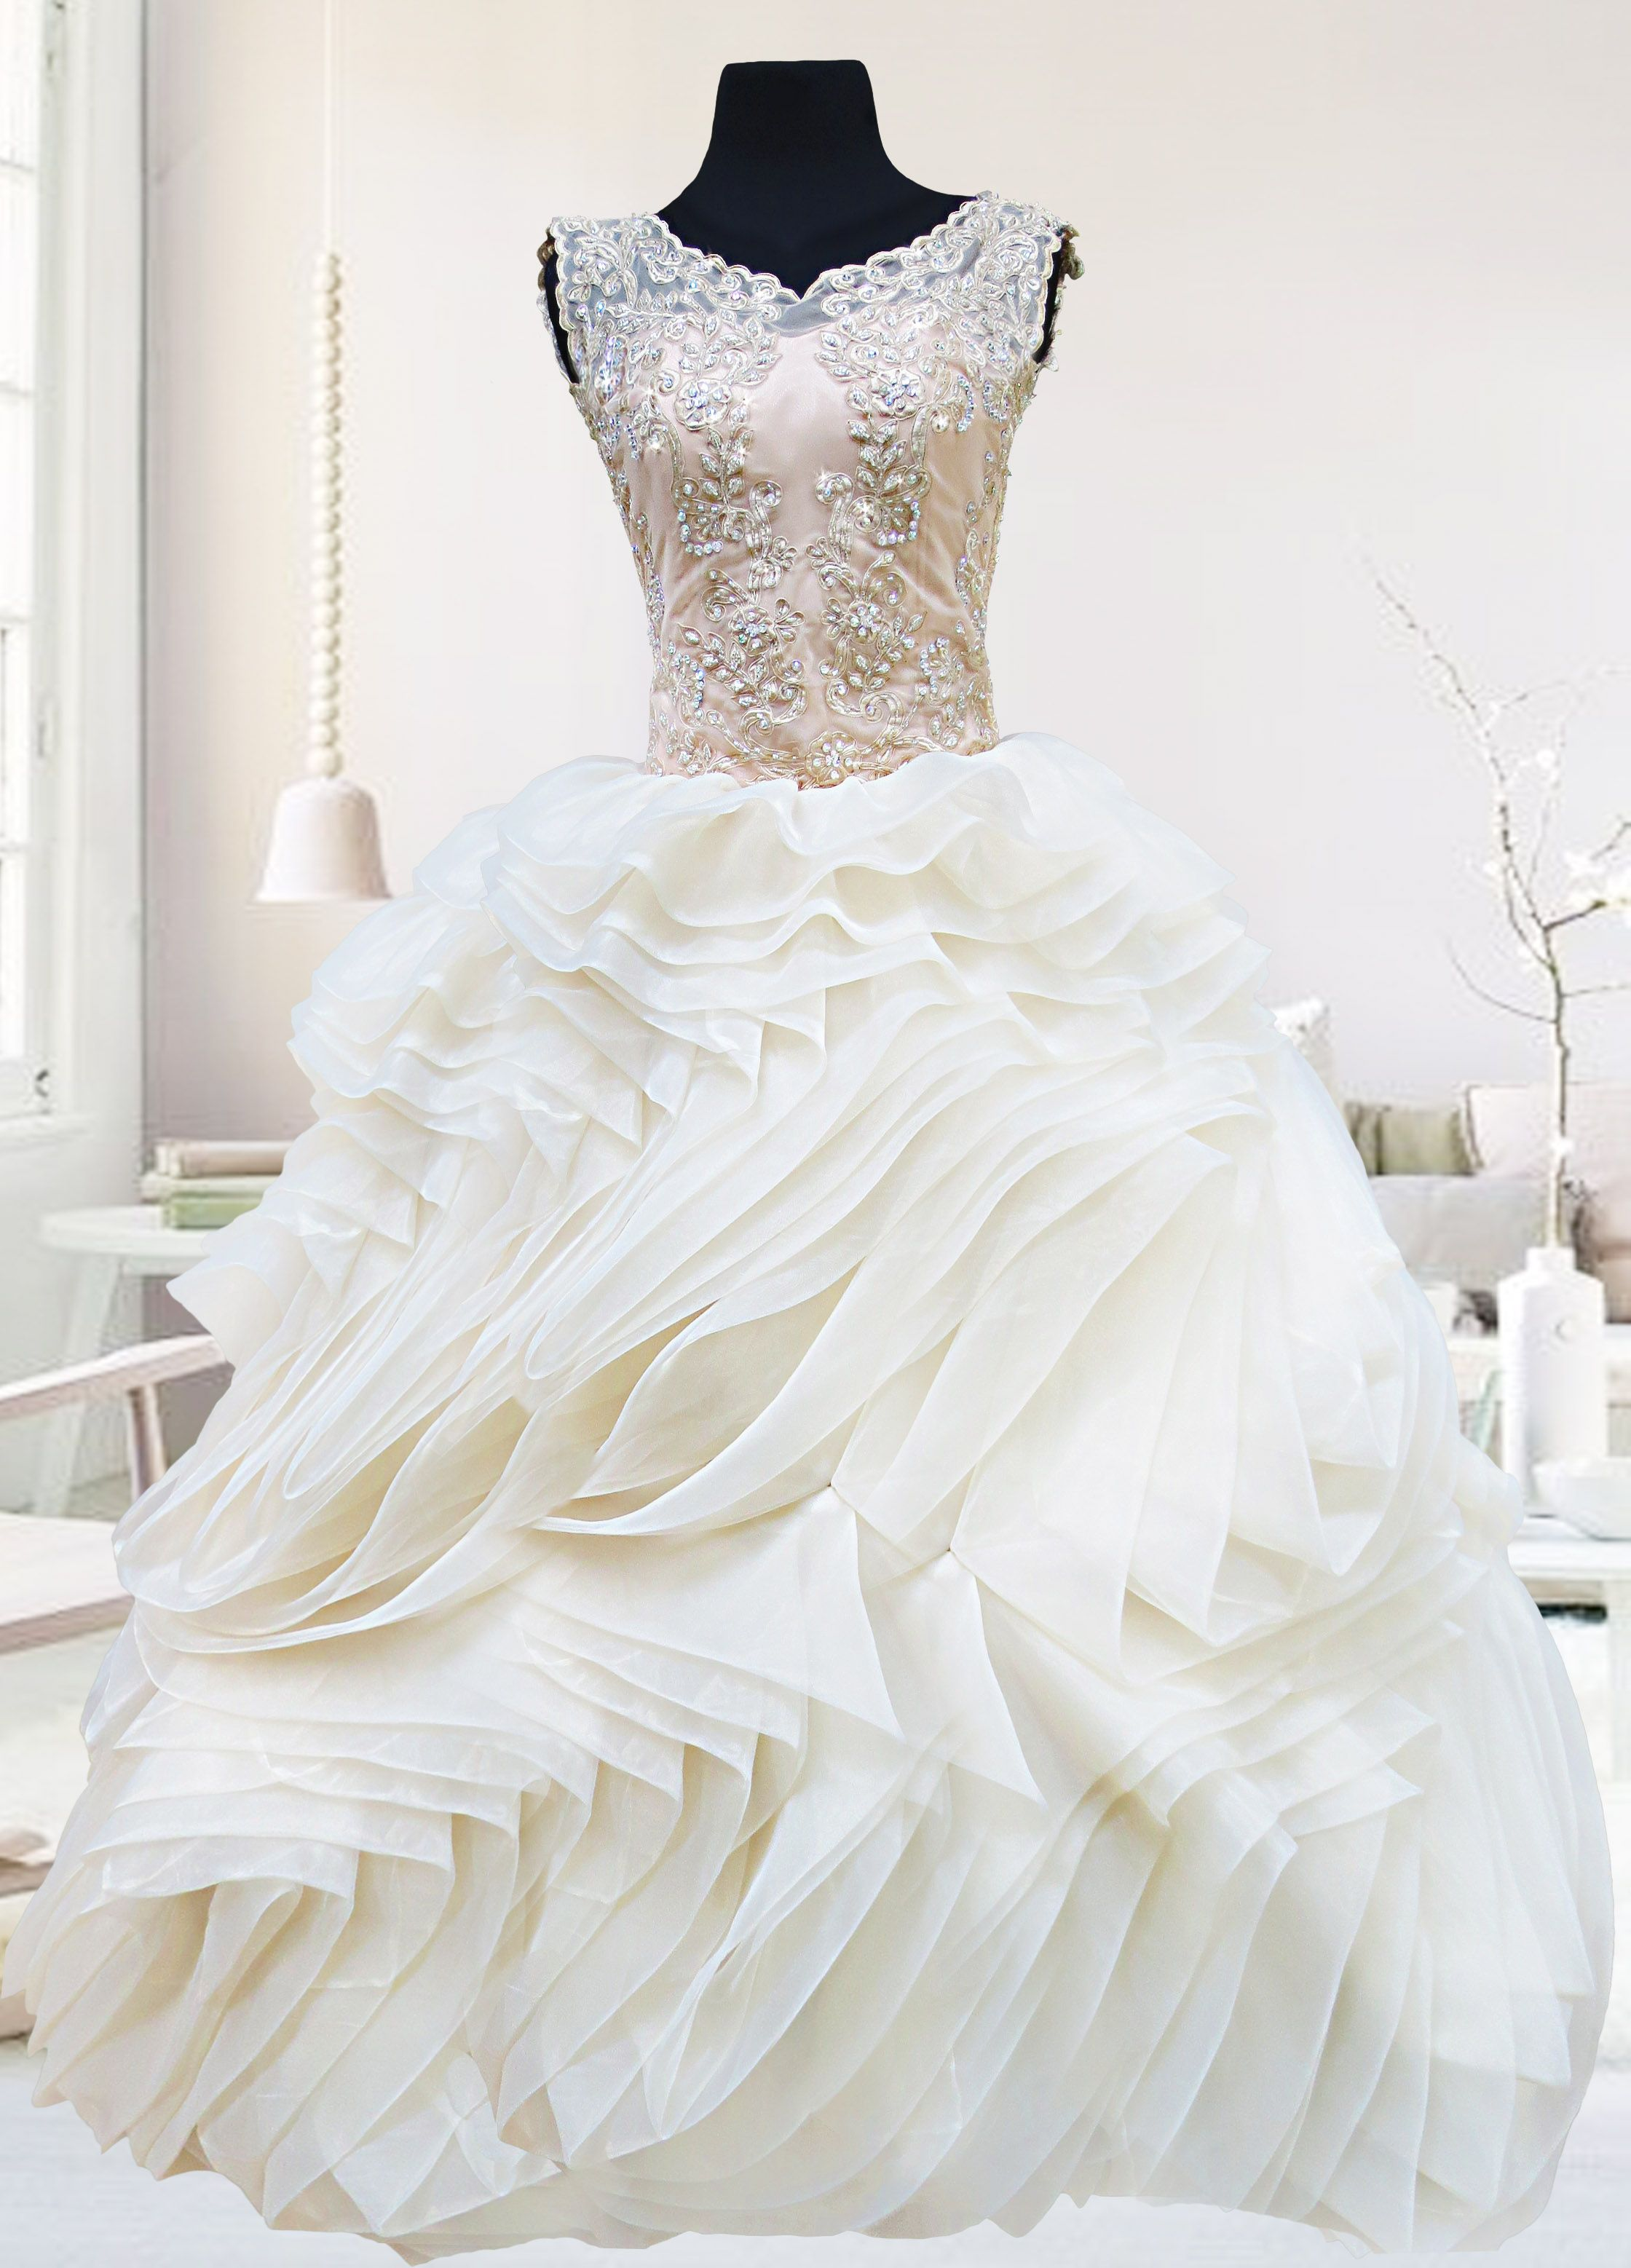 wedding dresses for rent The Angelina Gown is a champagne vintage inspired ball gown available for rent at Php5